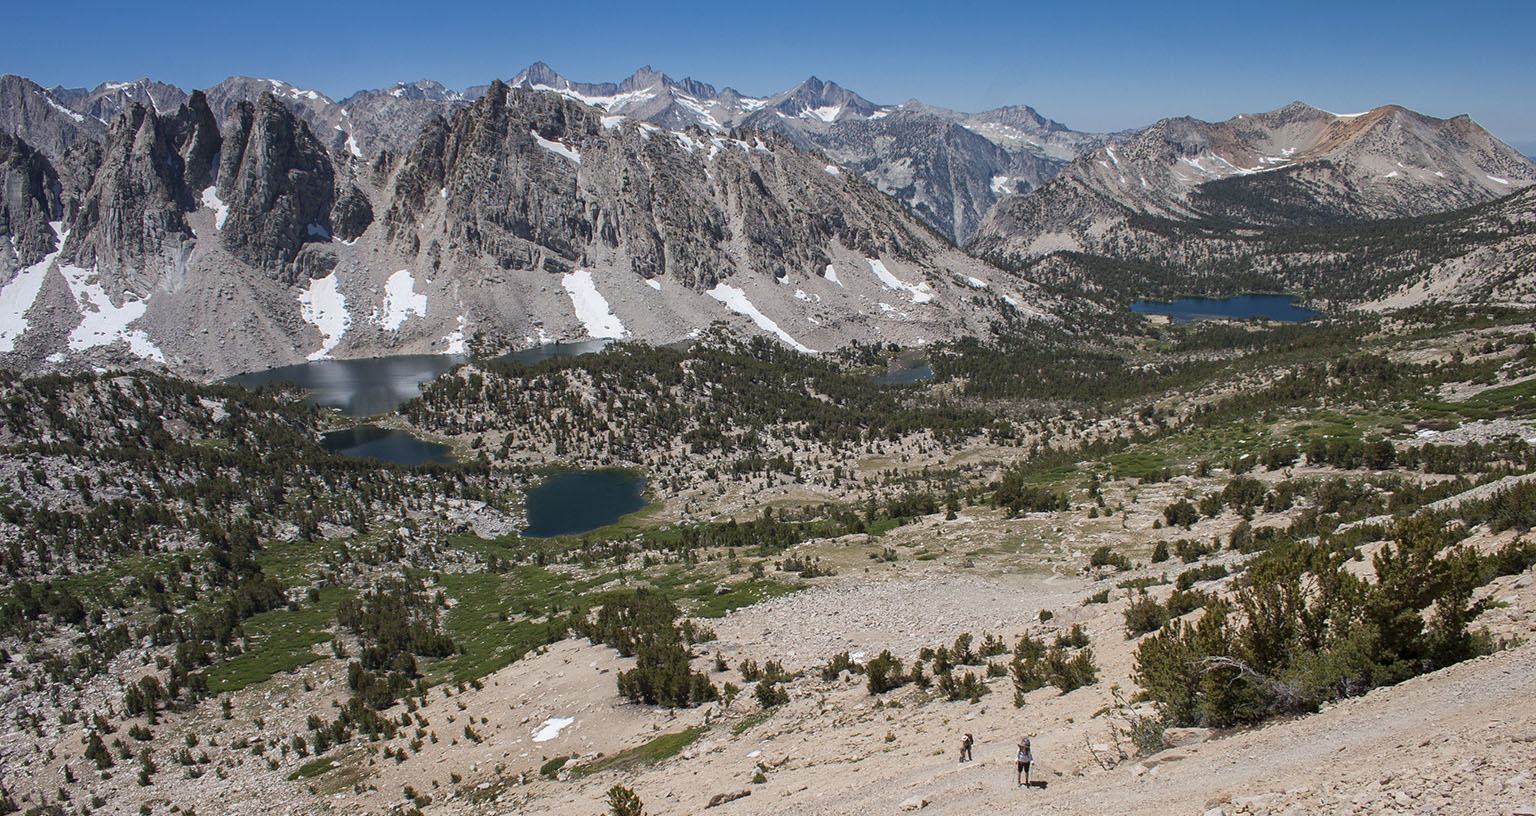 Looking down from Kearsarge Pass. Kearsarge Lakes on the left, Bullfrog Lake in the distance.